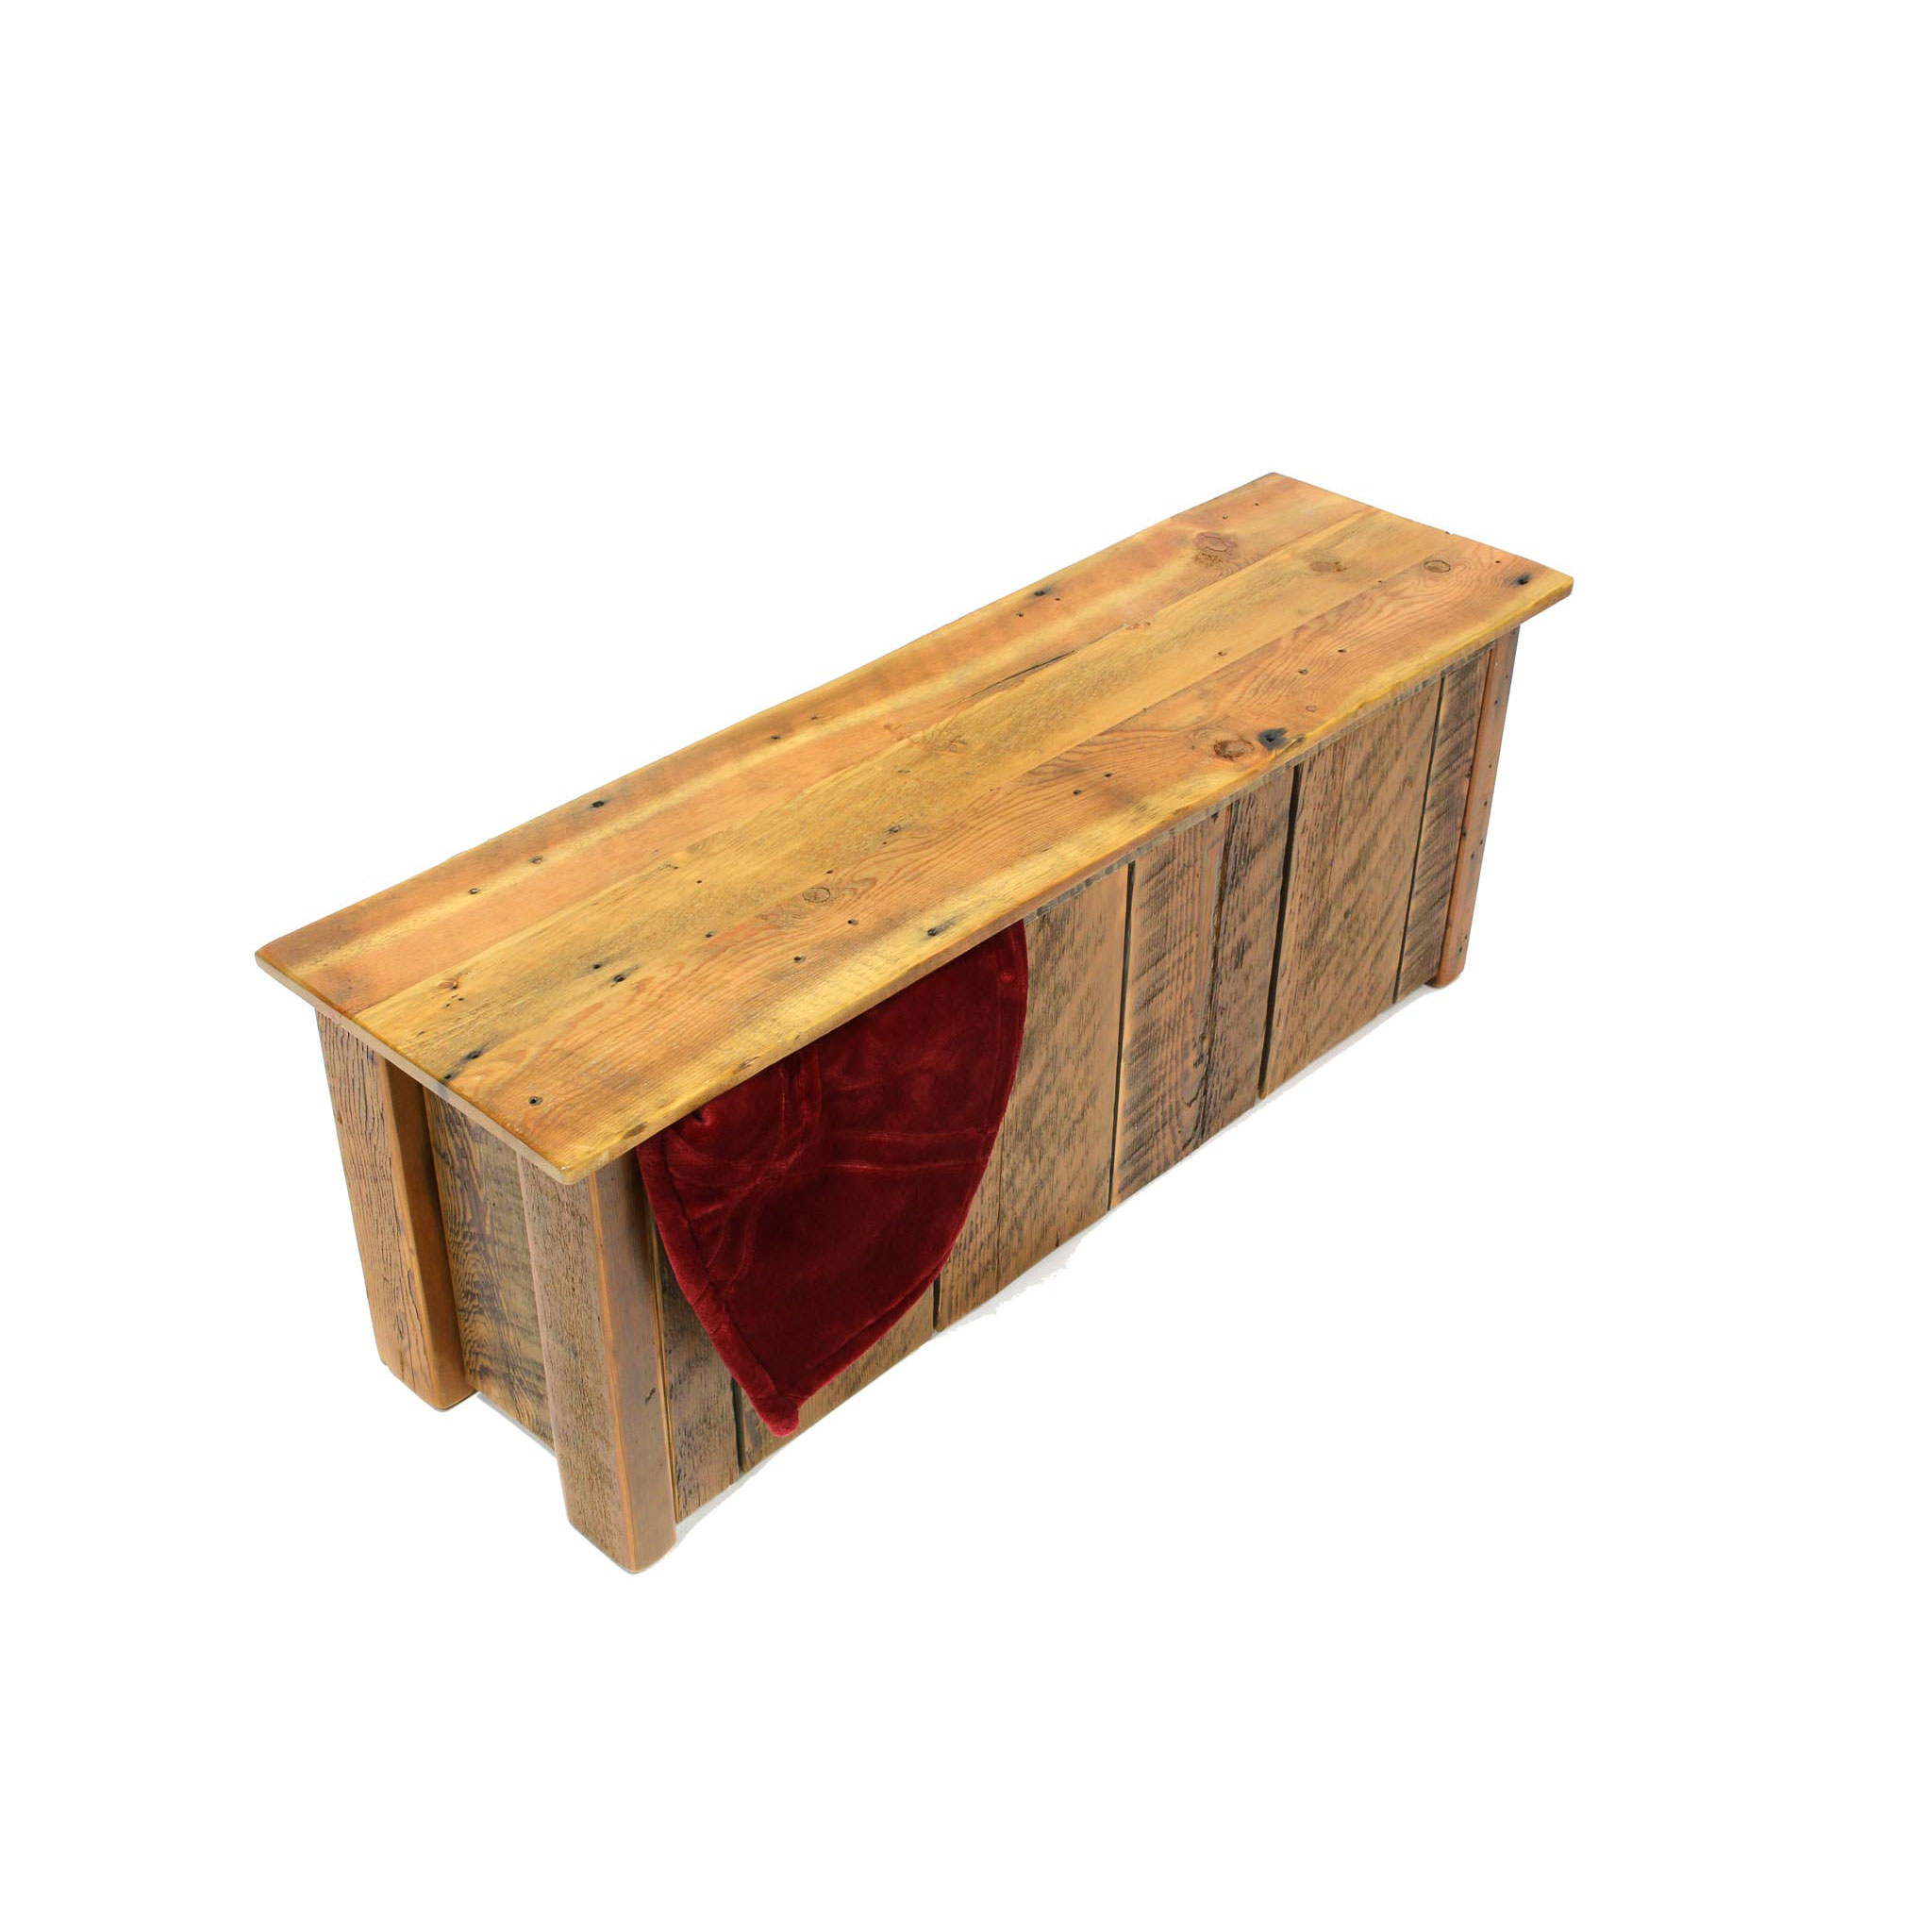 BLANKET-CHEST-NO-DRAWER-BARNWOOD-ANGLE-VIEW-resized.jpg